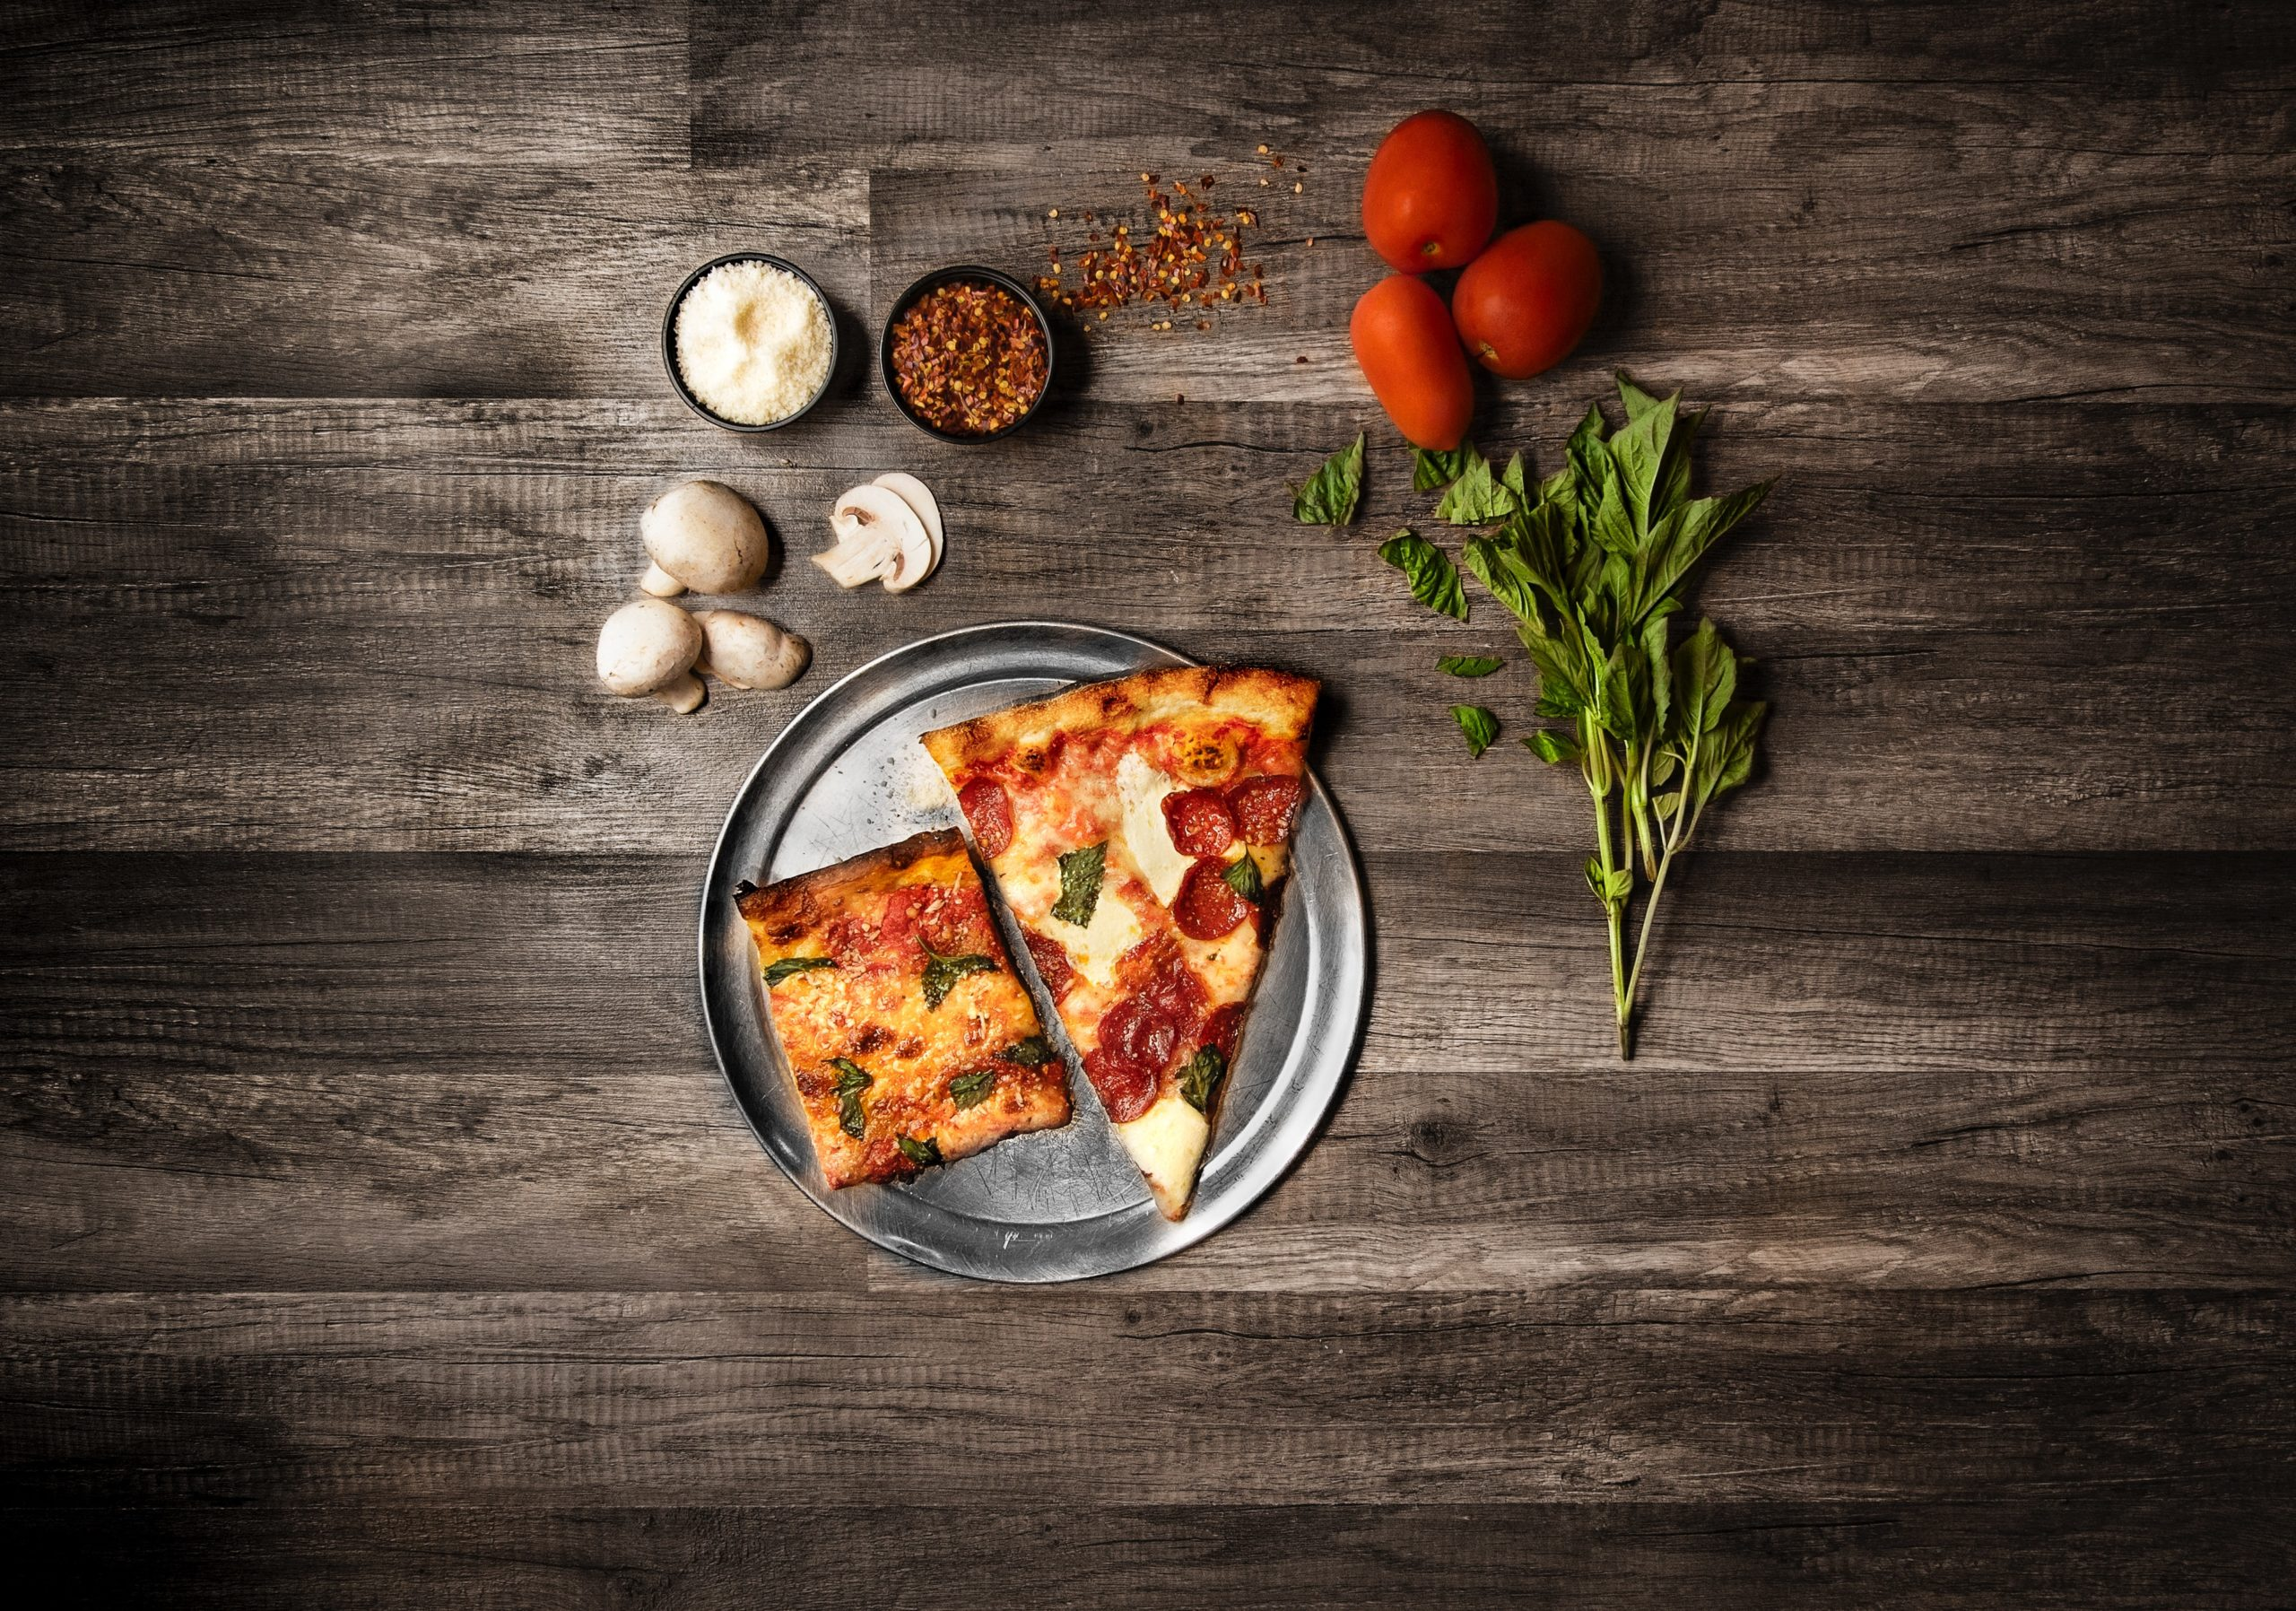 The Basic Steps of Making a Pizza